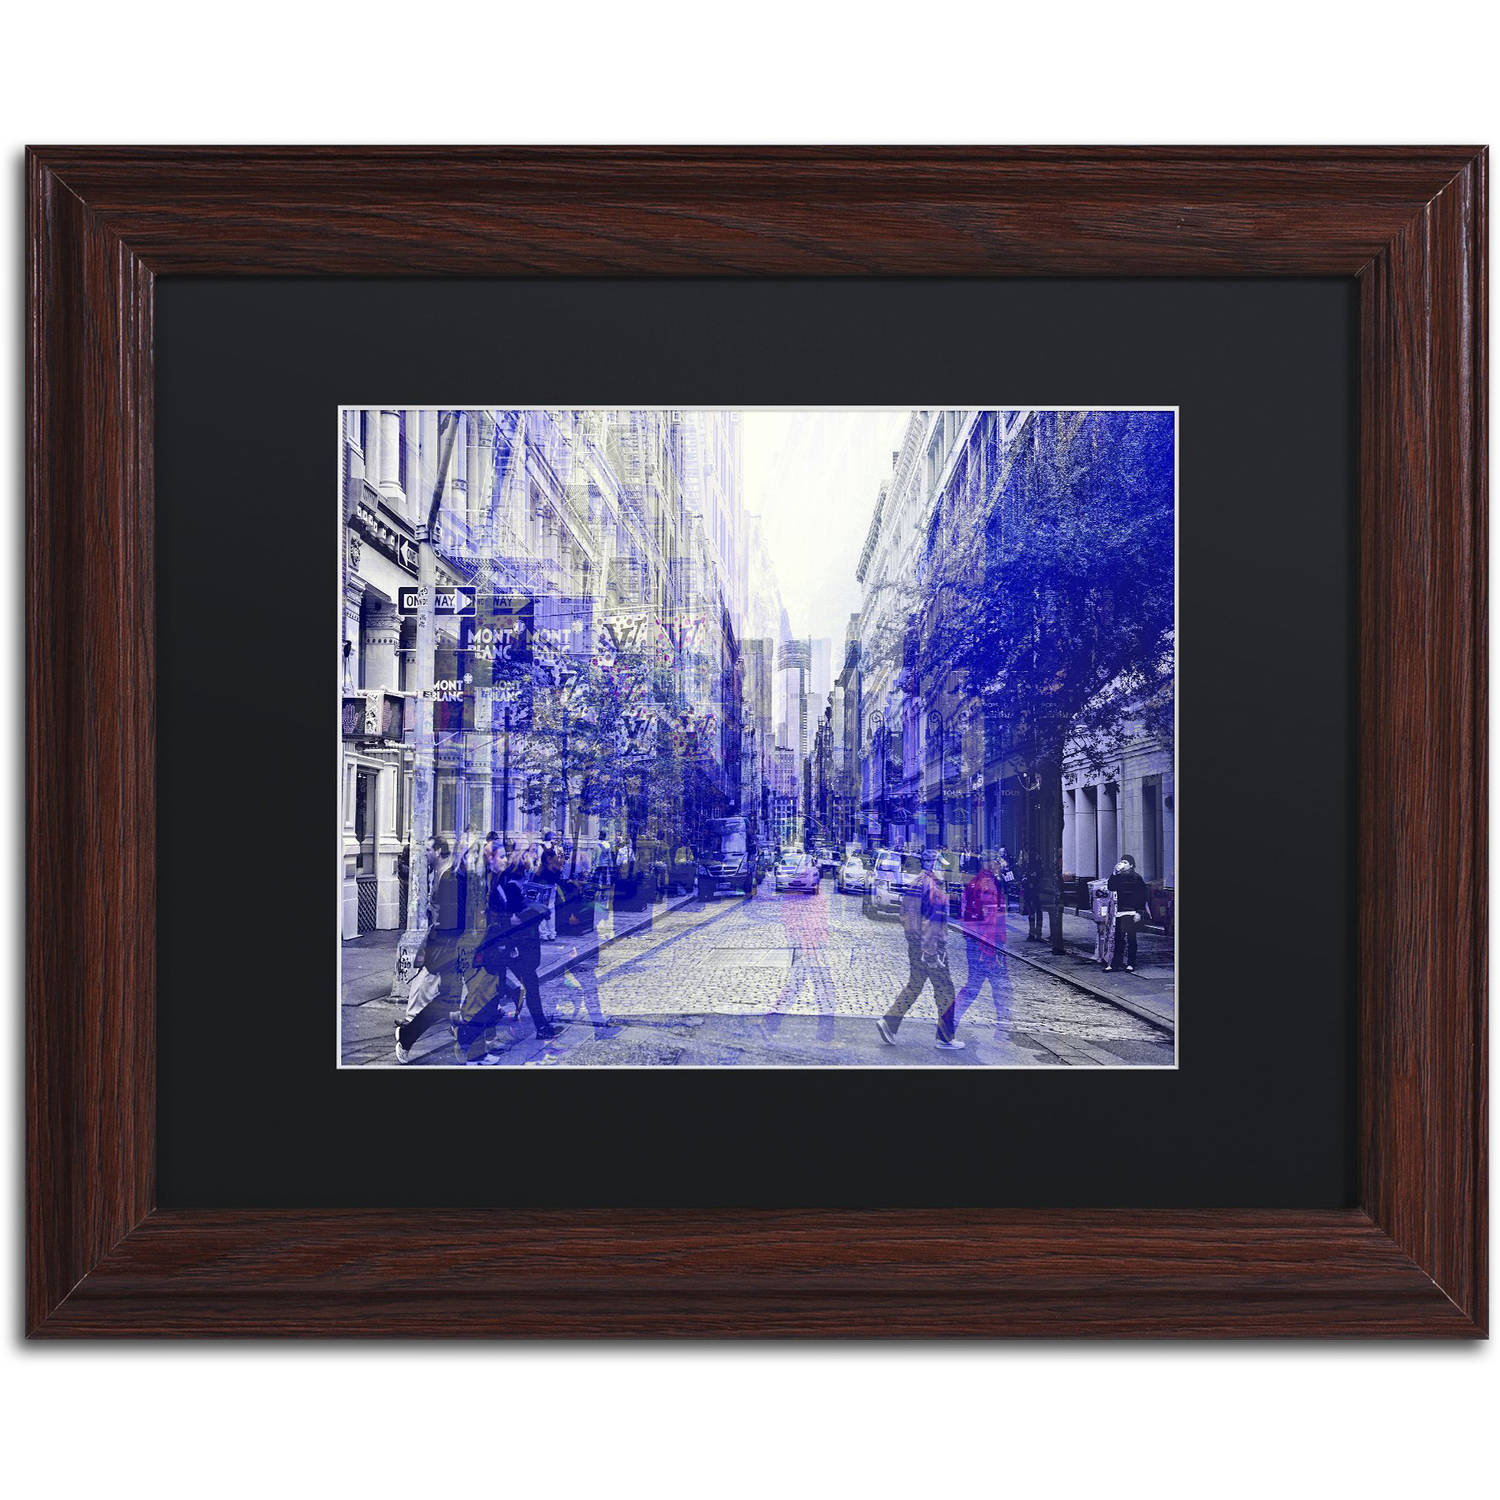 "Trademark Fine Art ""Urban Vibrations Soho"" Canvas Art by Philippe Hugonnard, Black Matte, Wood Frame"